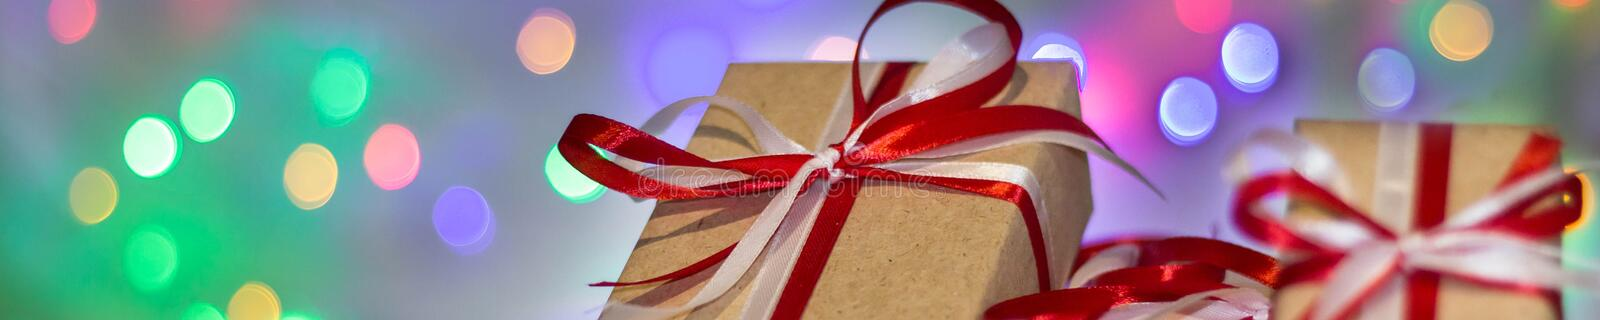 Banner of Christmas gift box against bokeh background. Holiday greeting card royalty free stock photography